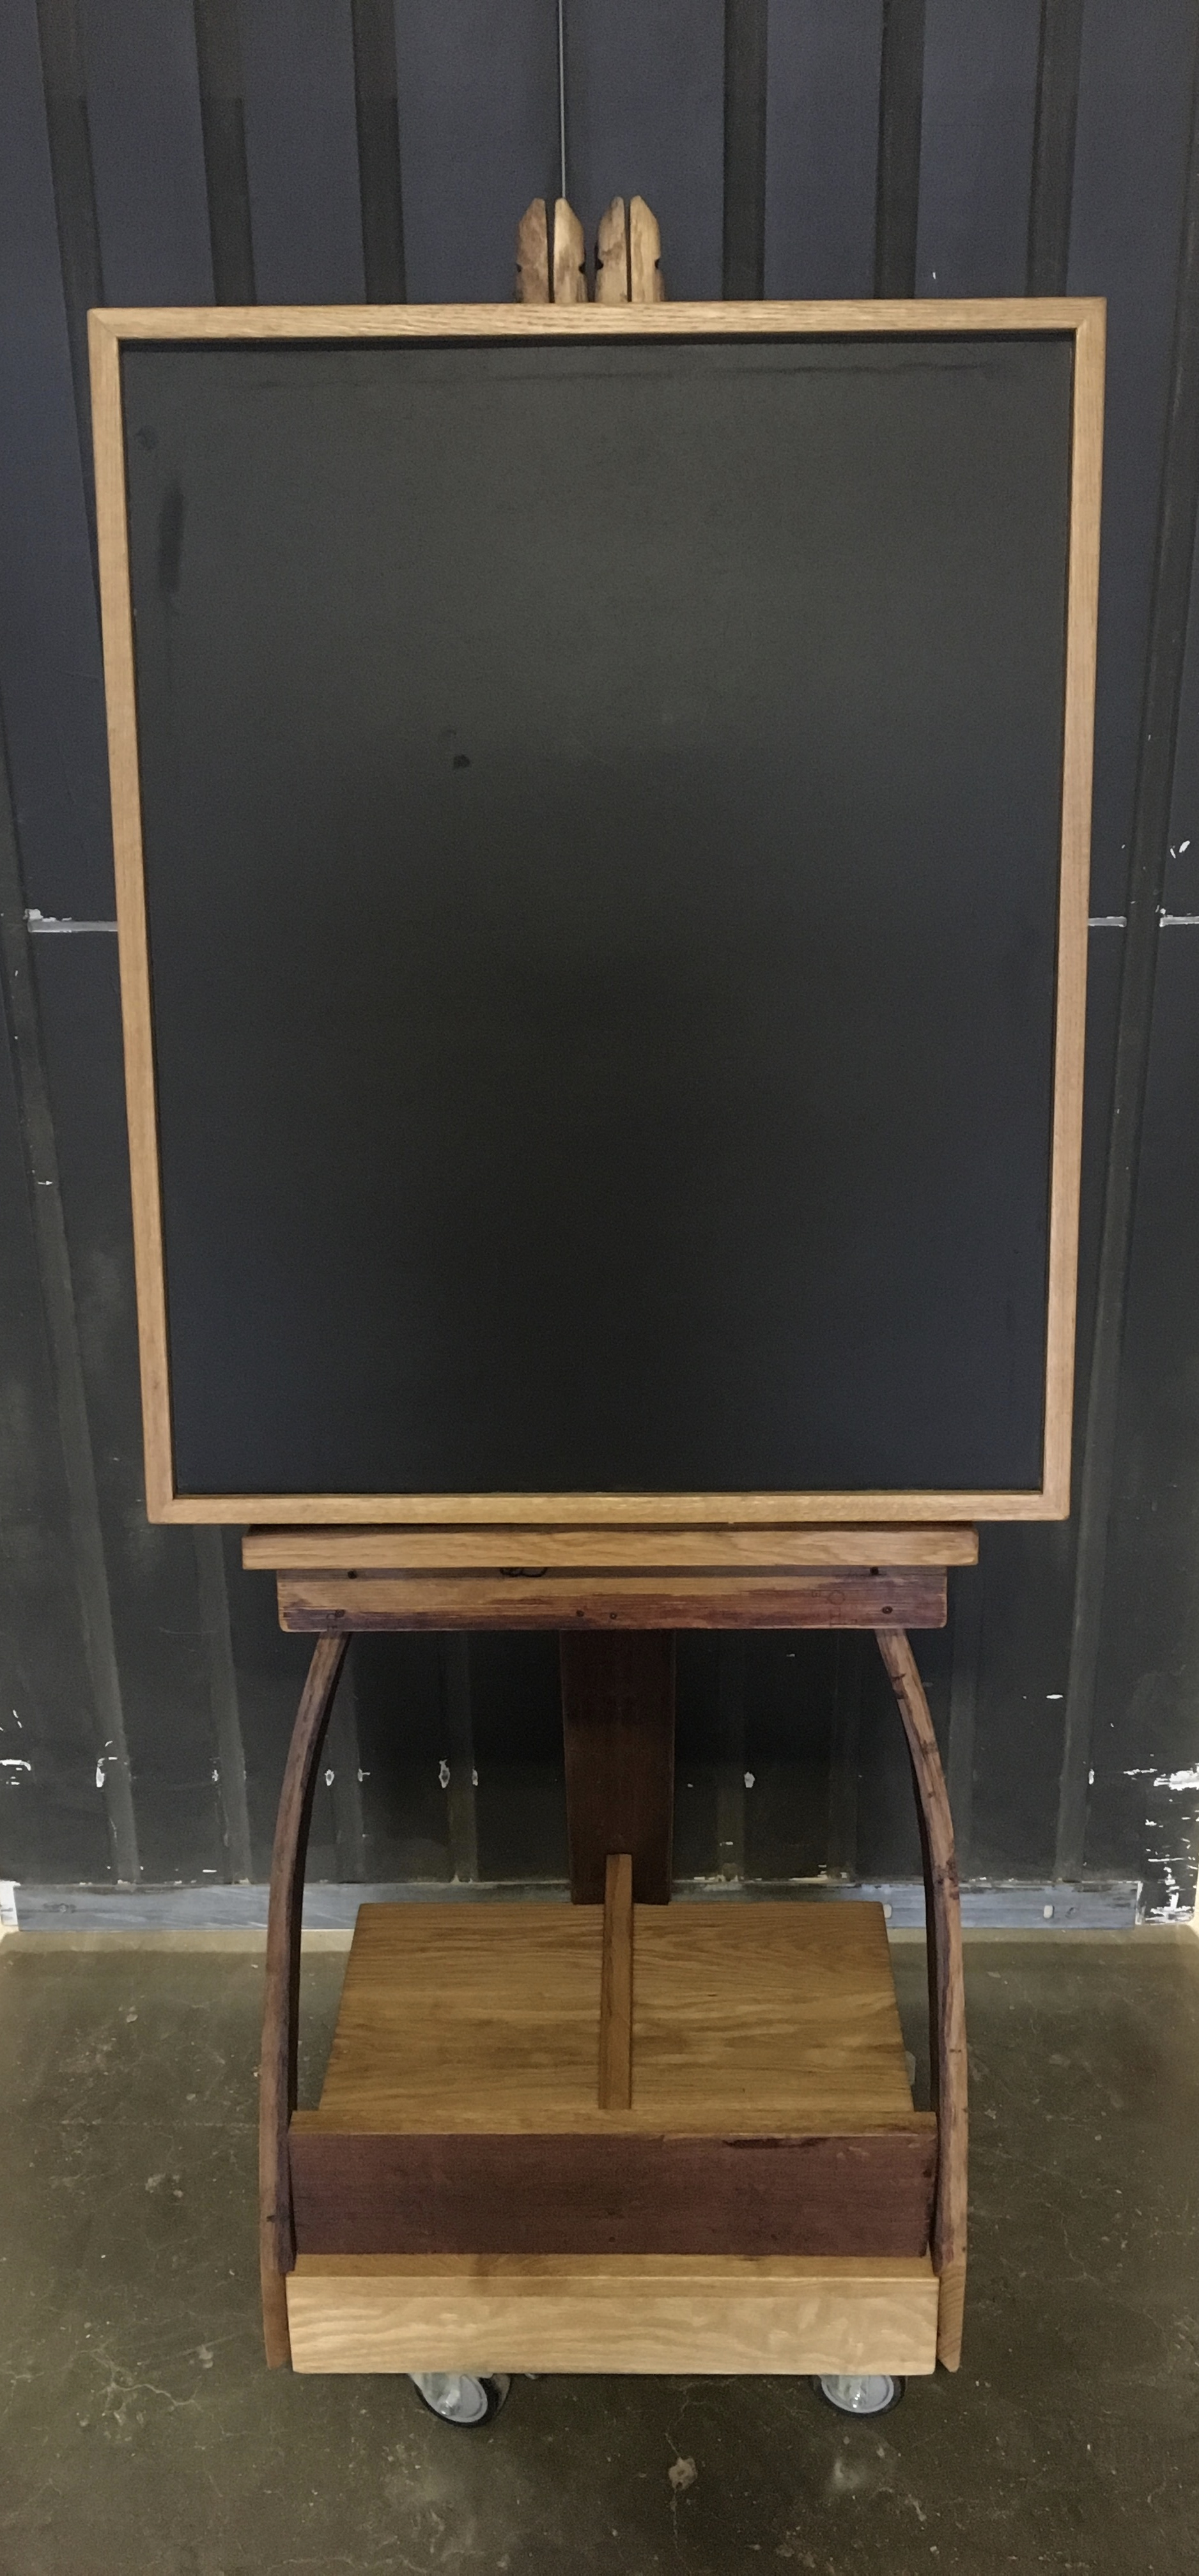 Barrel stave easel and chalkboard on mobile base